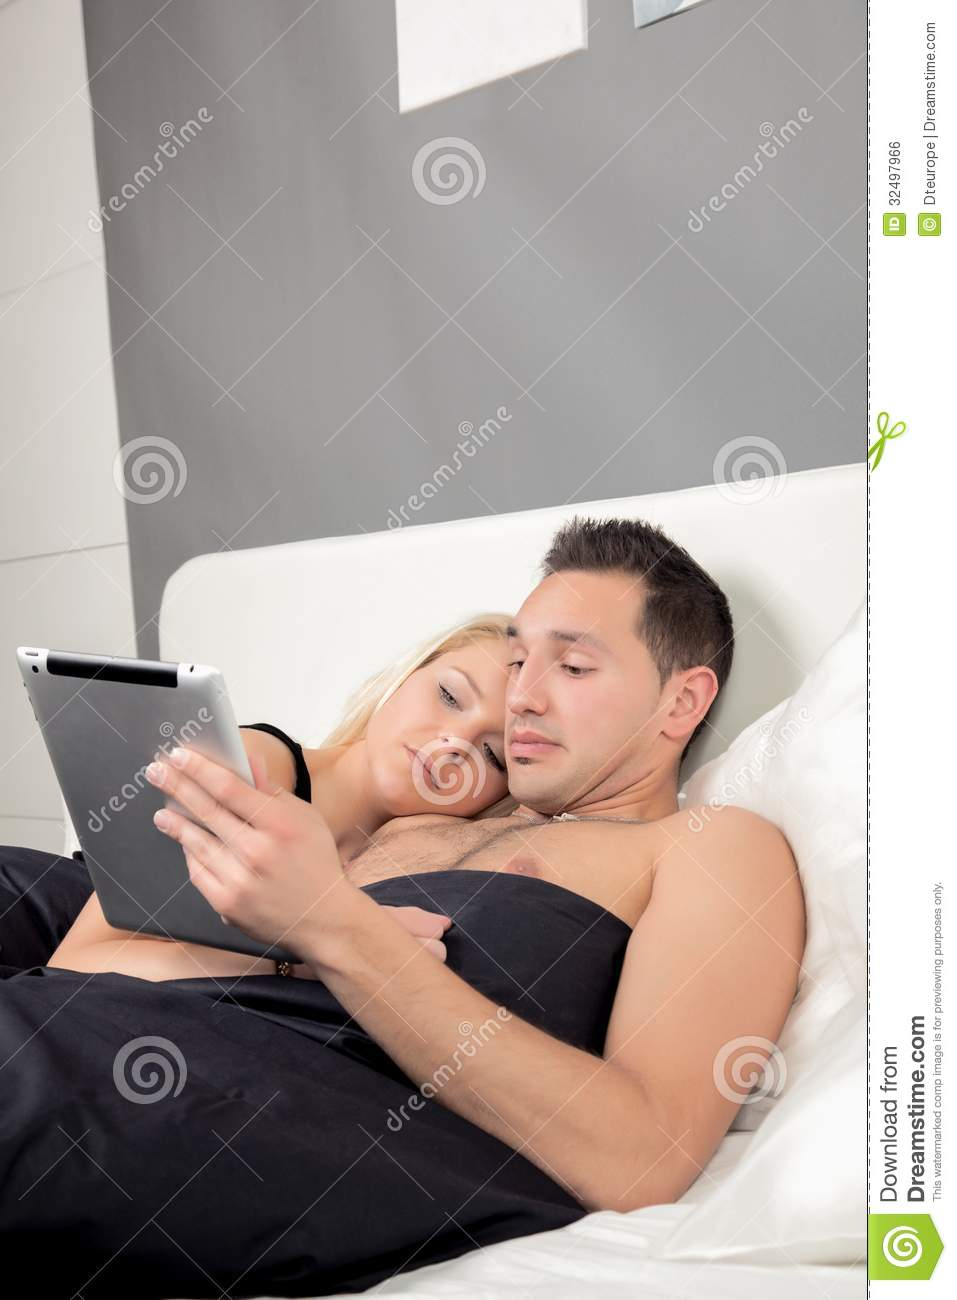 couple lying in bed reading a tablet pc stock photo image of loving leisure 32497966. Black Bedroom Furniture Sets. Home Design Ideas